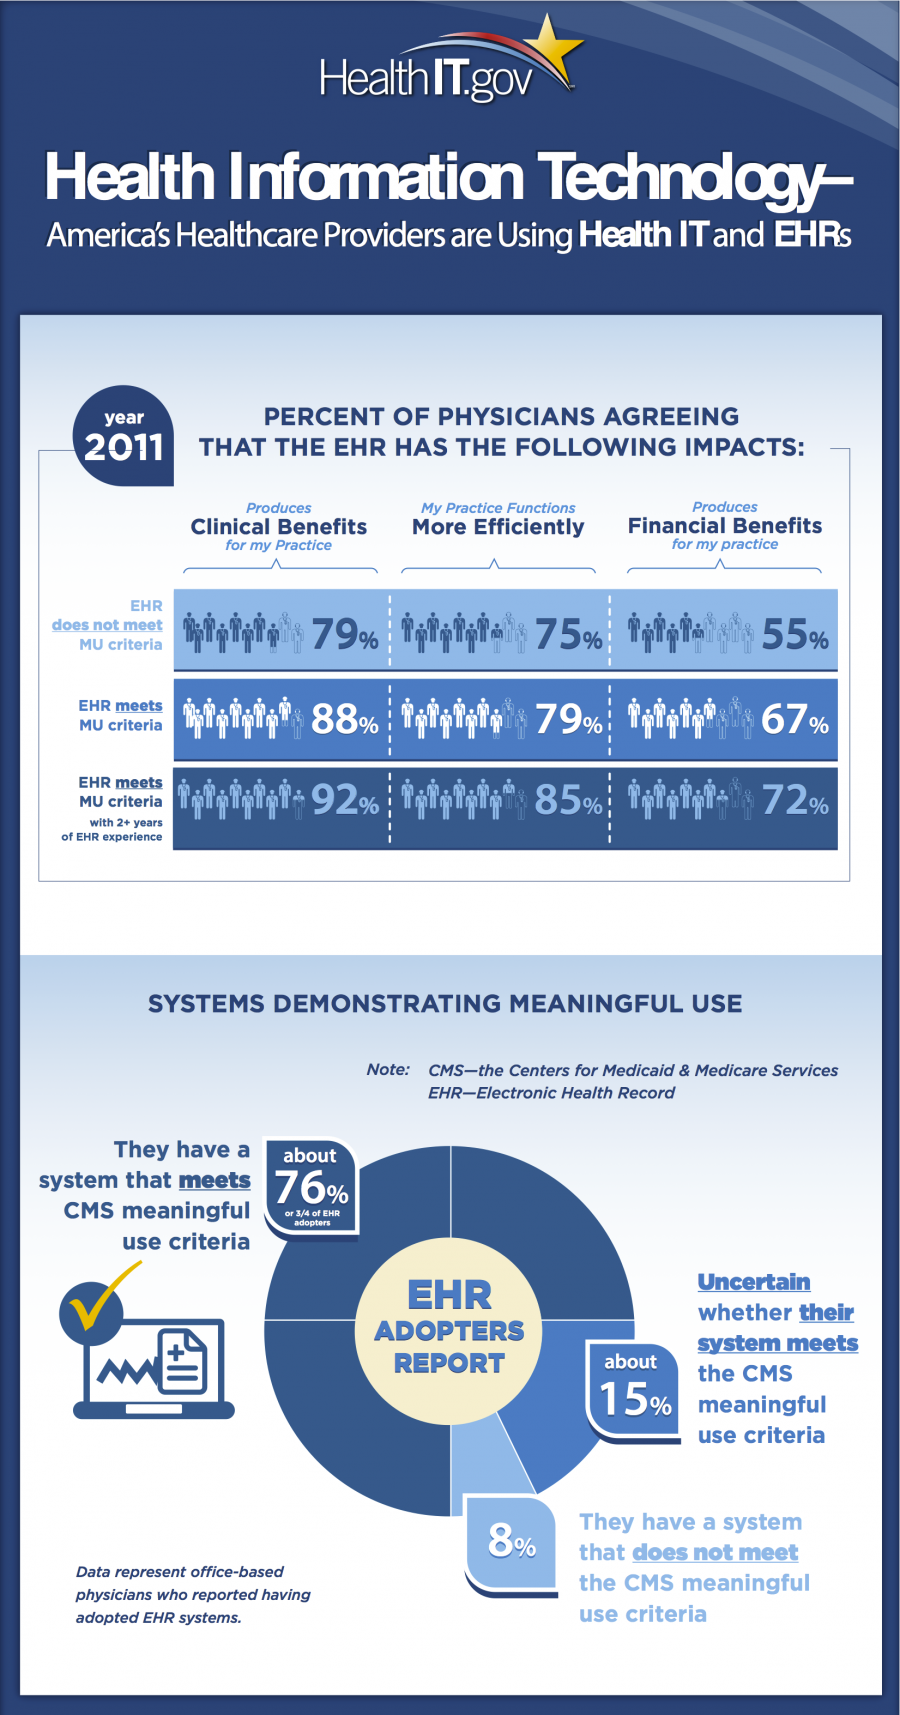 America's Healthcare Providers are Using Health IT and EHRs Infographic Image